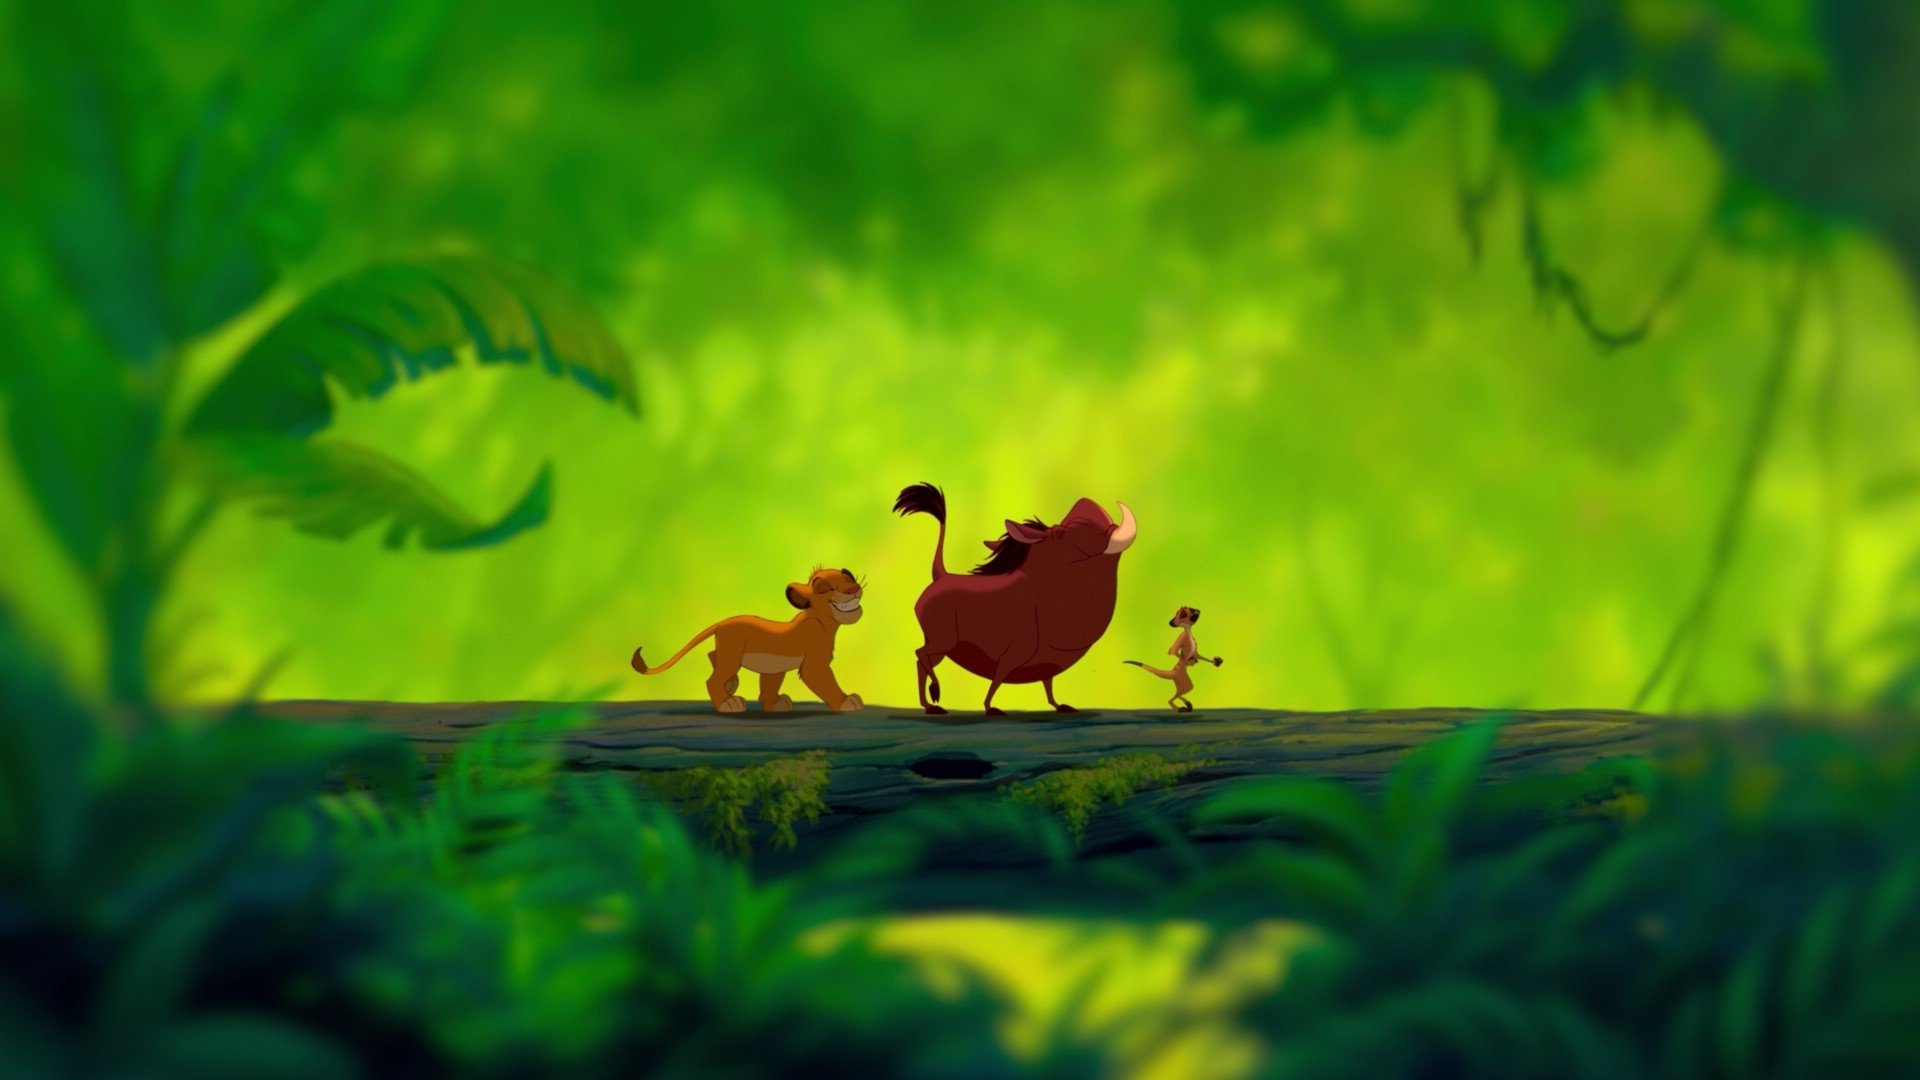 5 lion king hd wallpapers | background images - wallpaper abyss